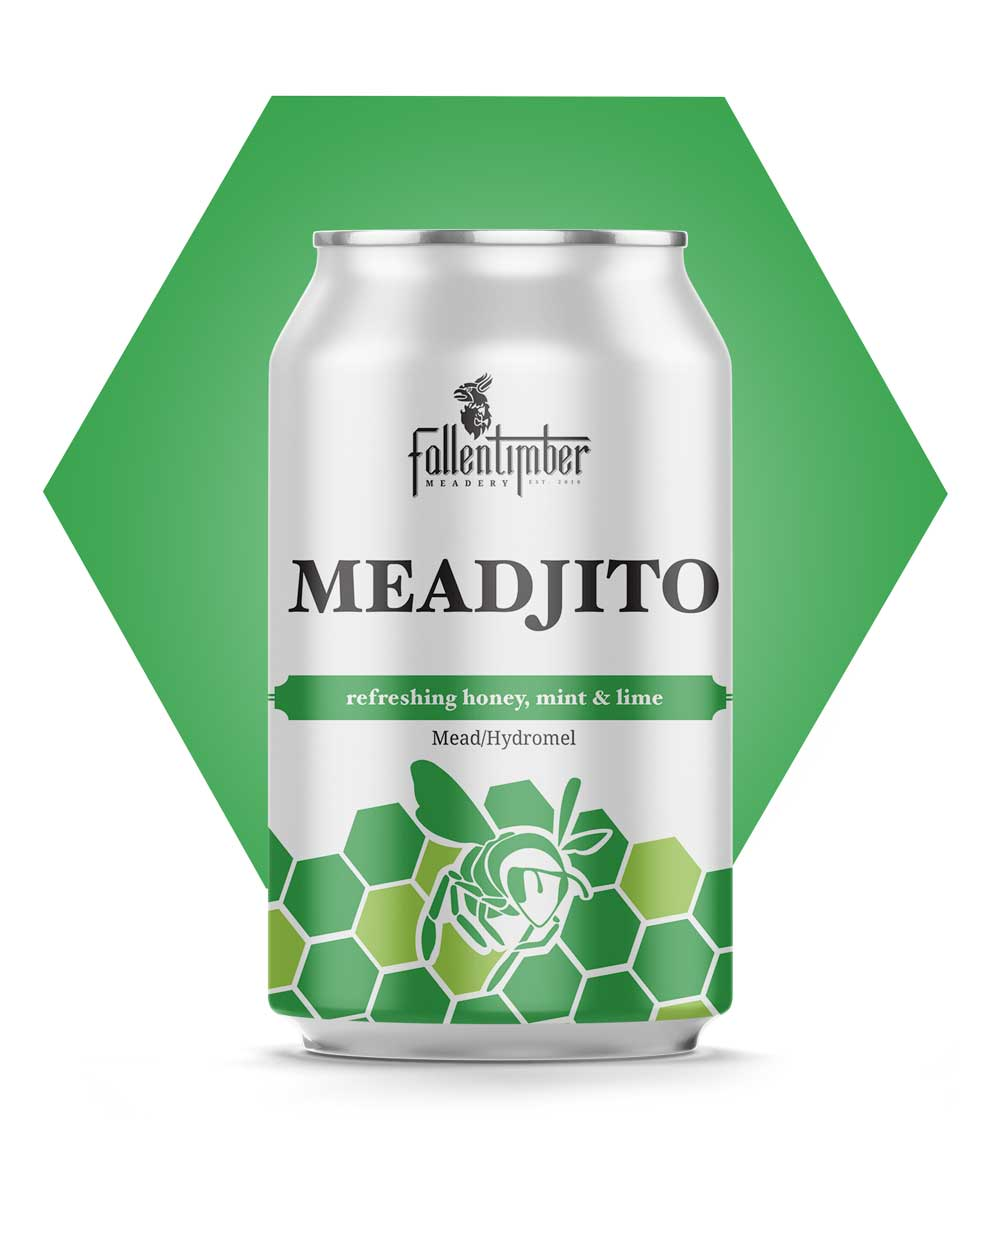 Meadjito can